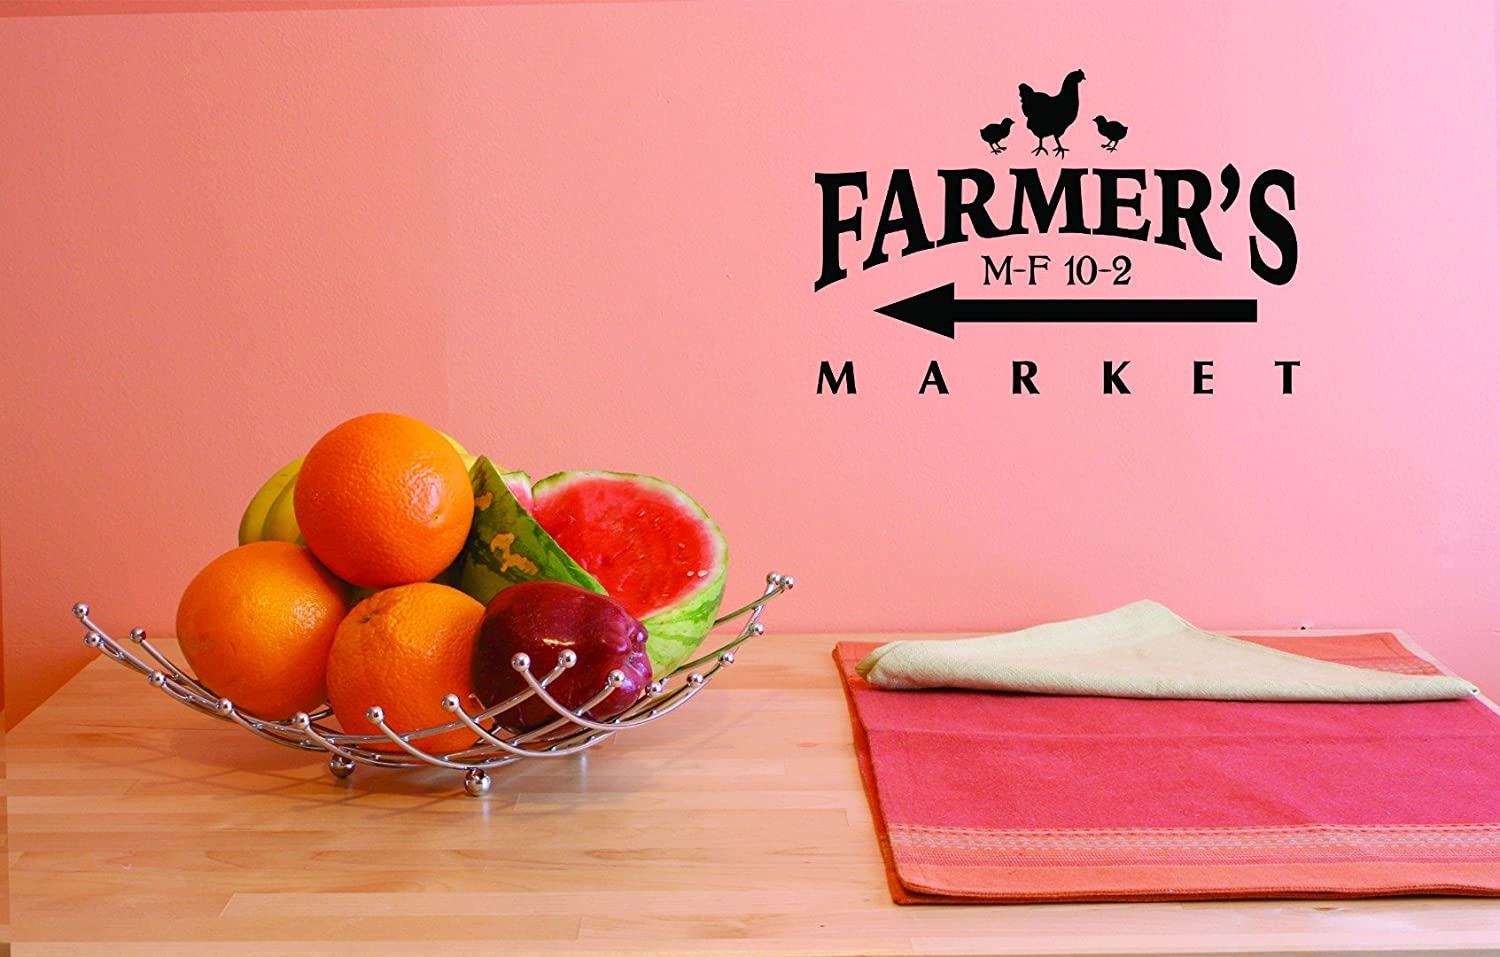 Design with Vinyl JER 1763 3 Hot New Decals Farmers Market Wall Art Size 20 Inches x 40 Inches Color Black 20 x 40